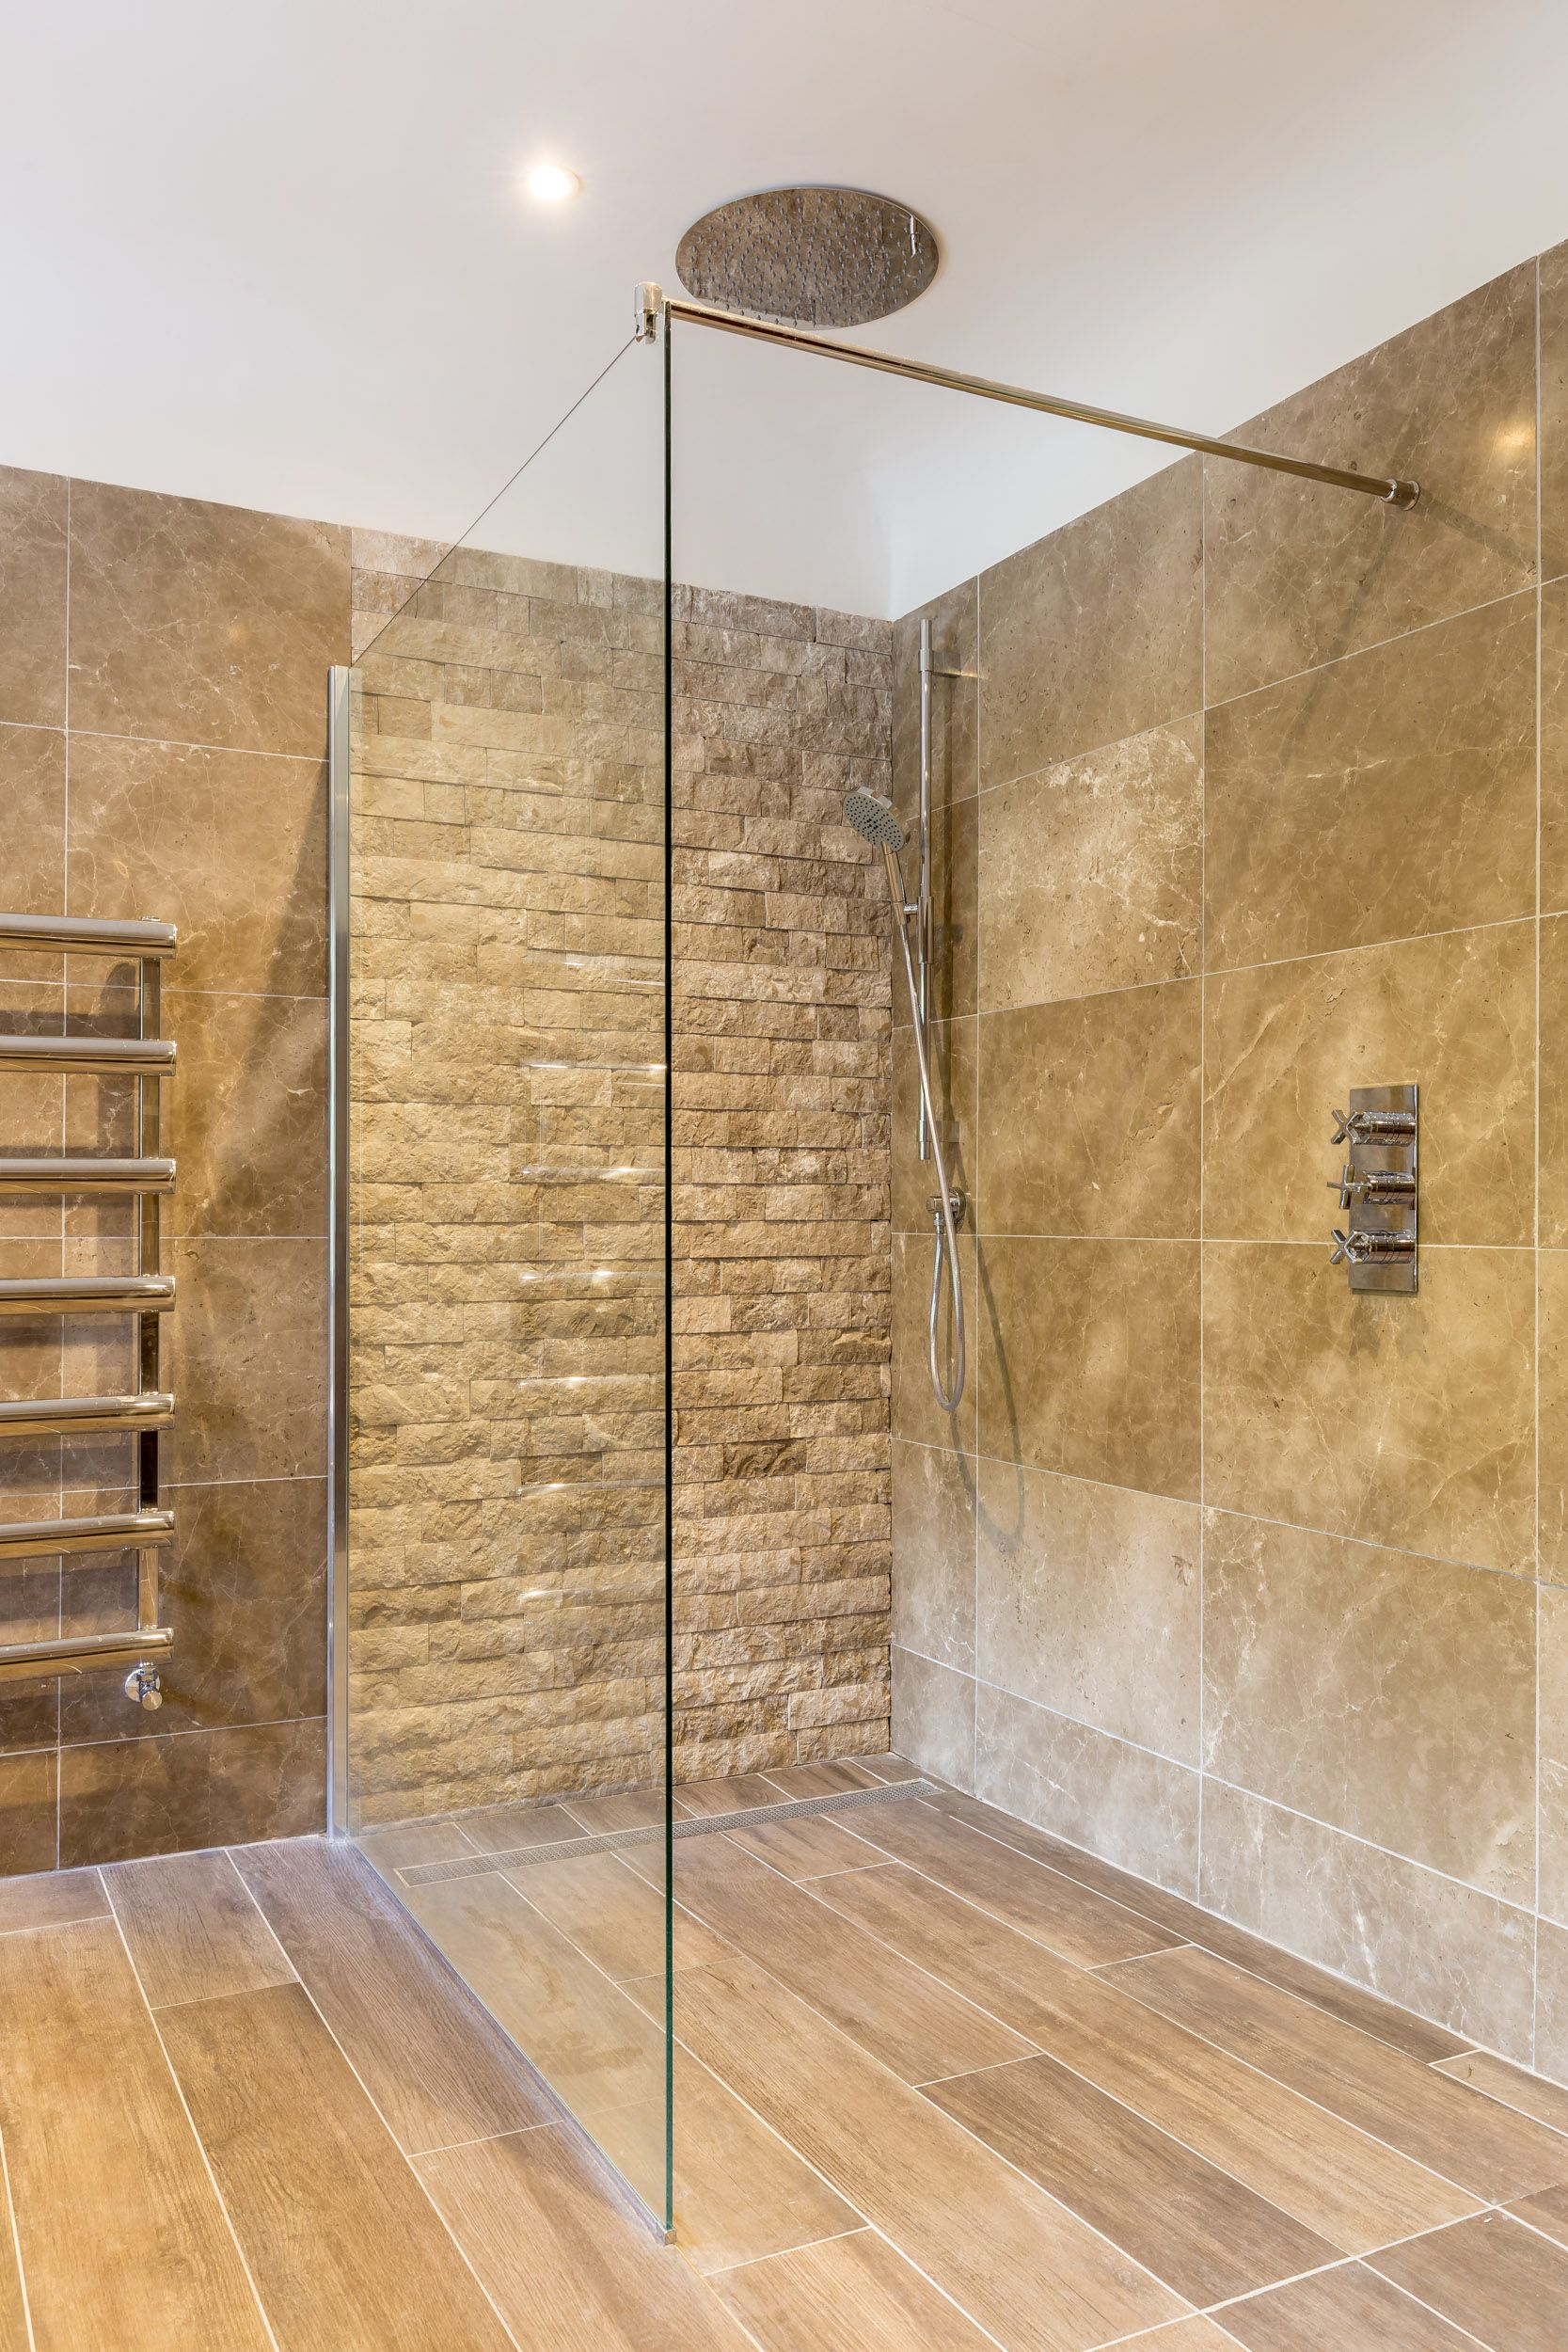 contemporary bathroom  feature stone wall tiles  texture  rainmaker  glass screen  gulley